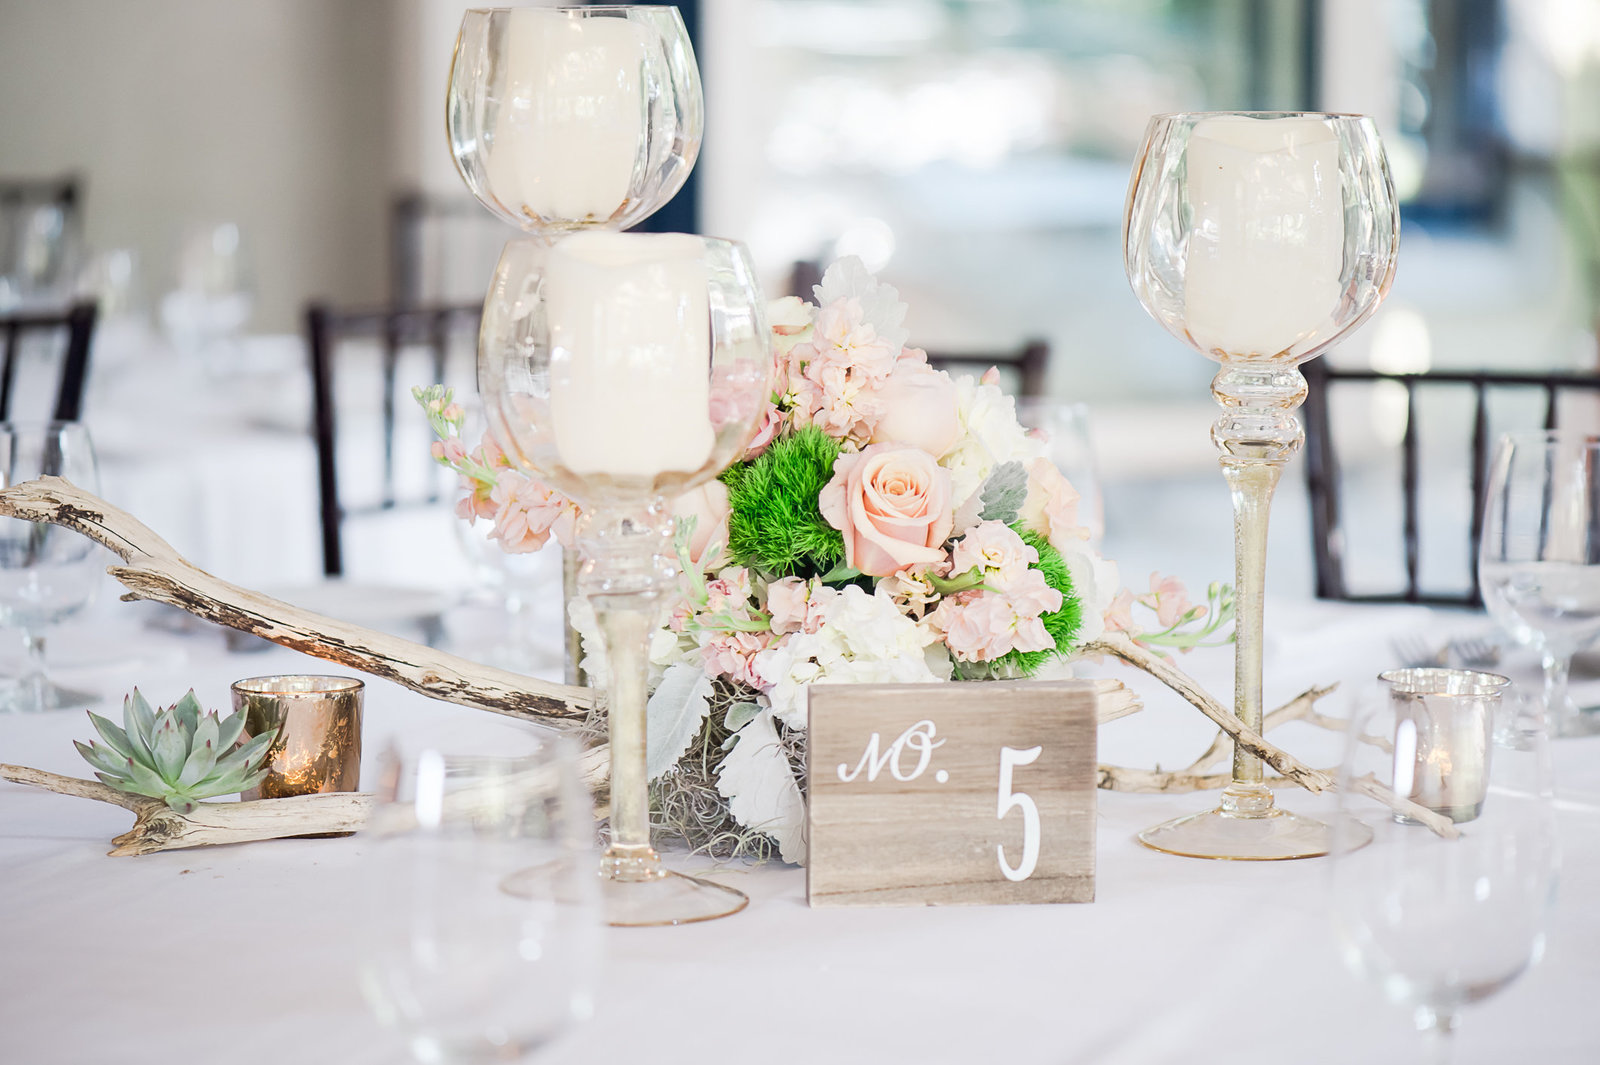 Table Decor Rustic - Sundy House by Palm Beach Photography, Inc.